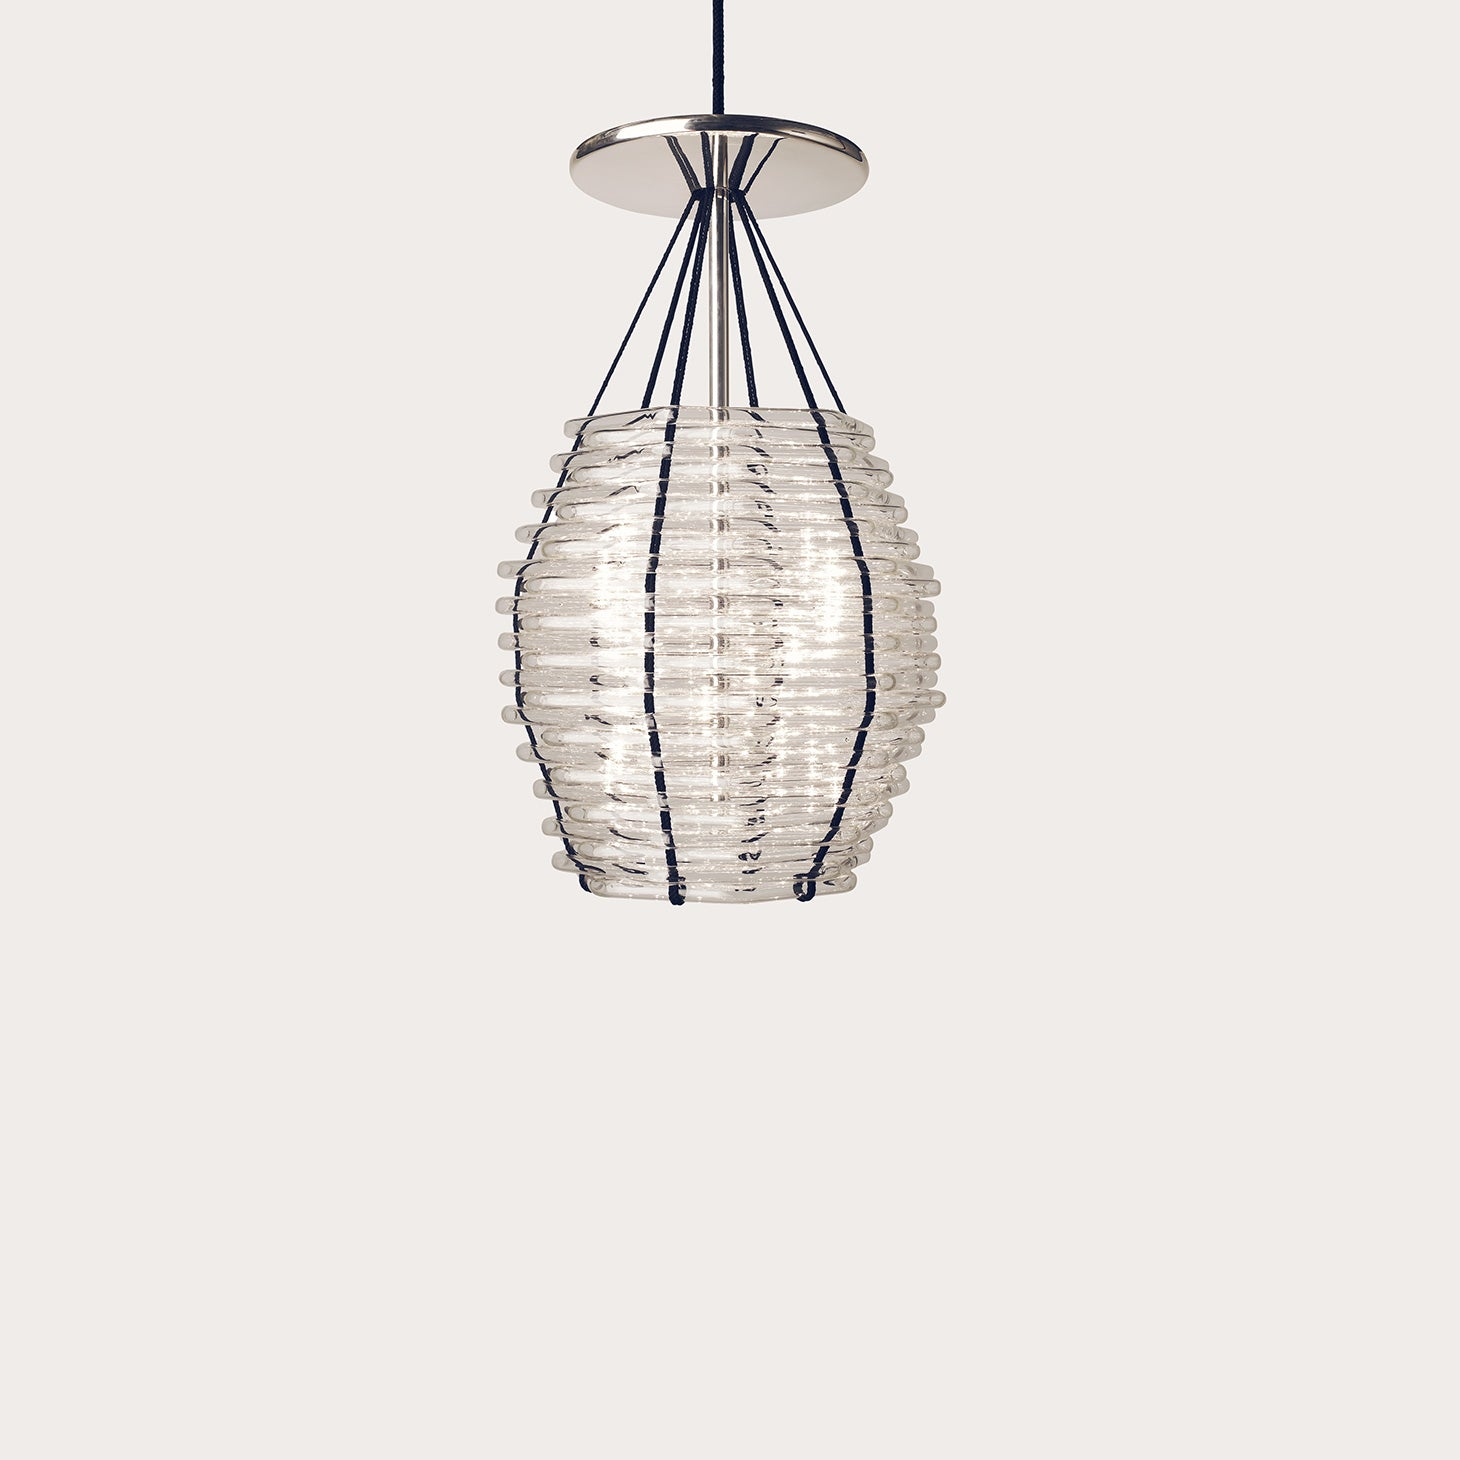 Basket Chandelier Lighting Marco Dessi Designer Furniture Sku: 220-160-10036